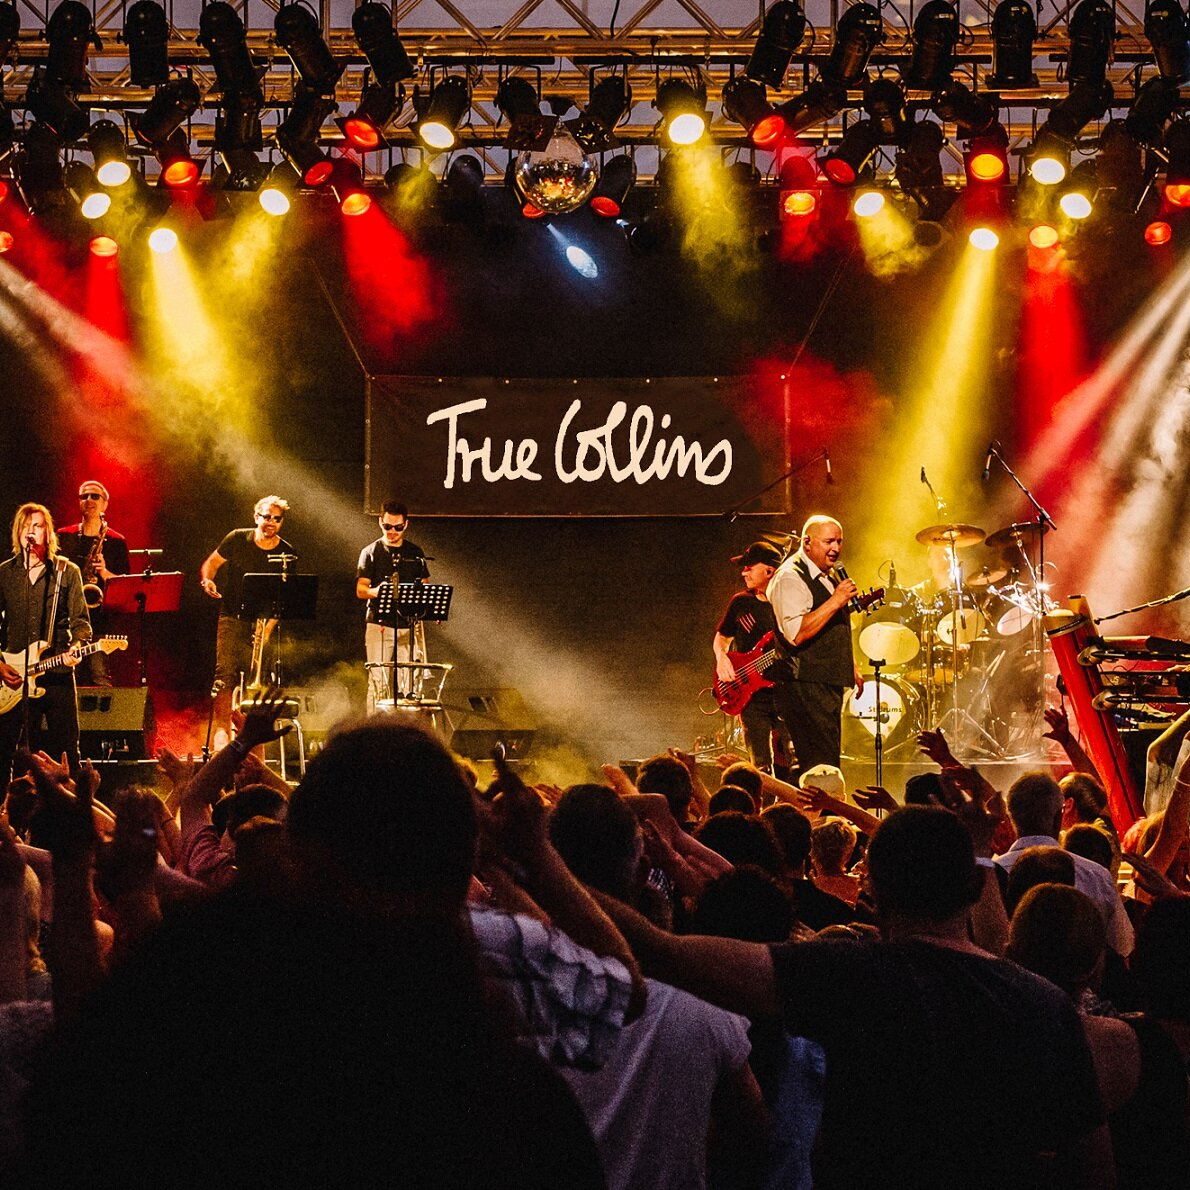 True Collins – A tribute to Phil Collins and Genesis